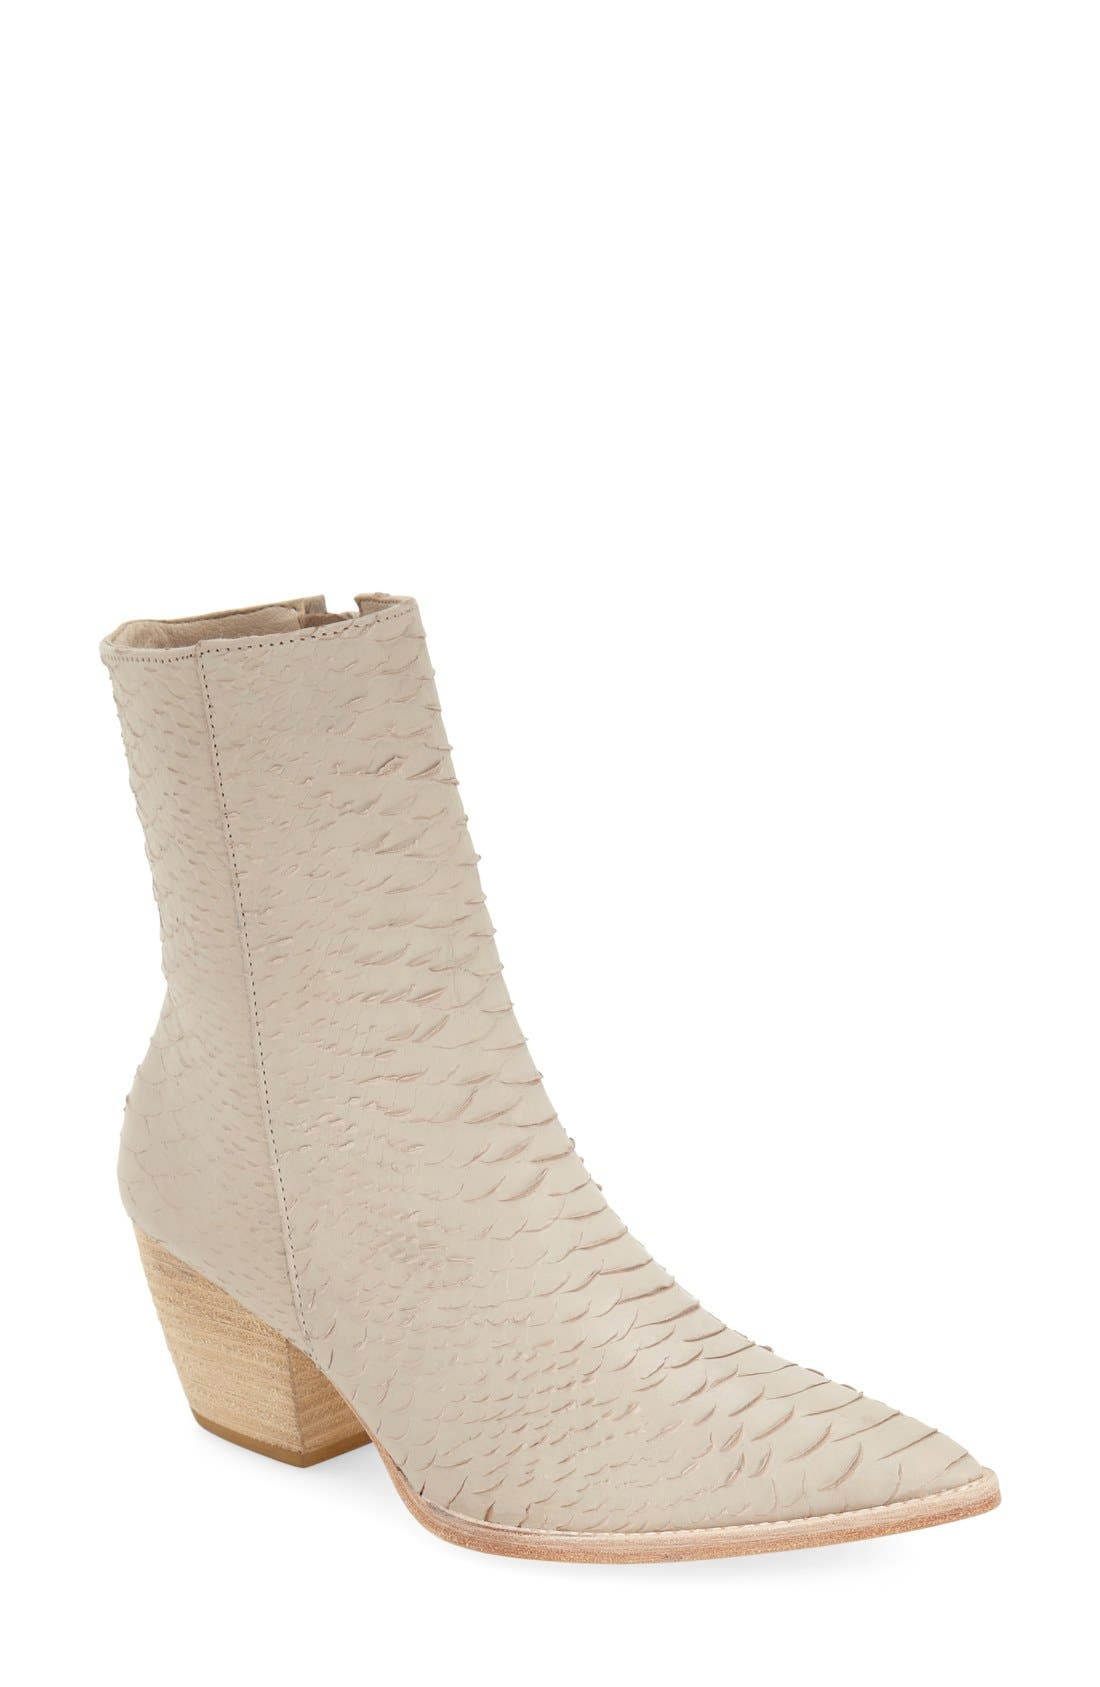 Matisse Caty Western Pointy Toe Bootie- White